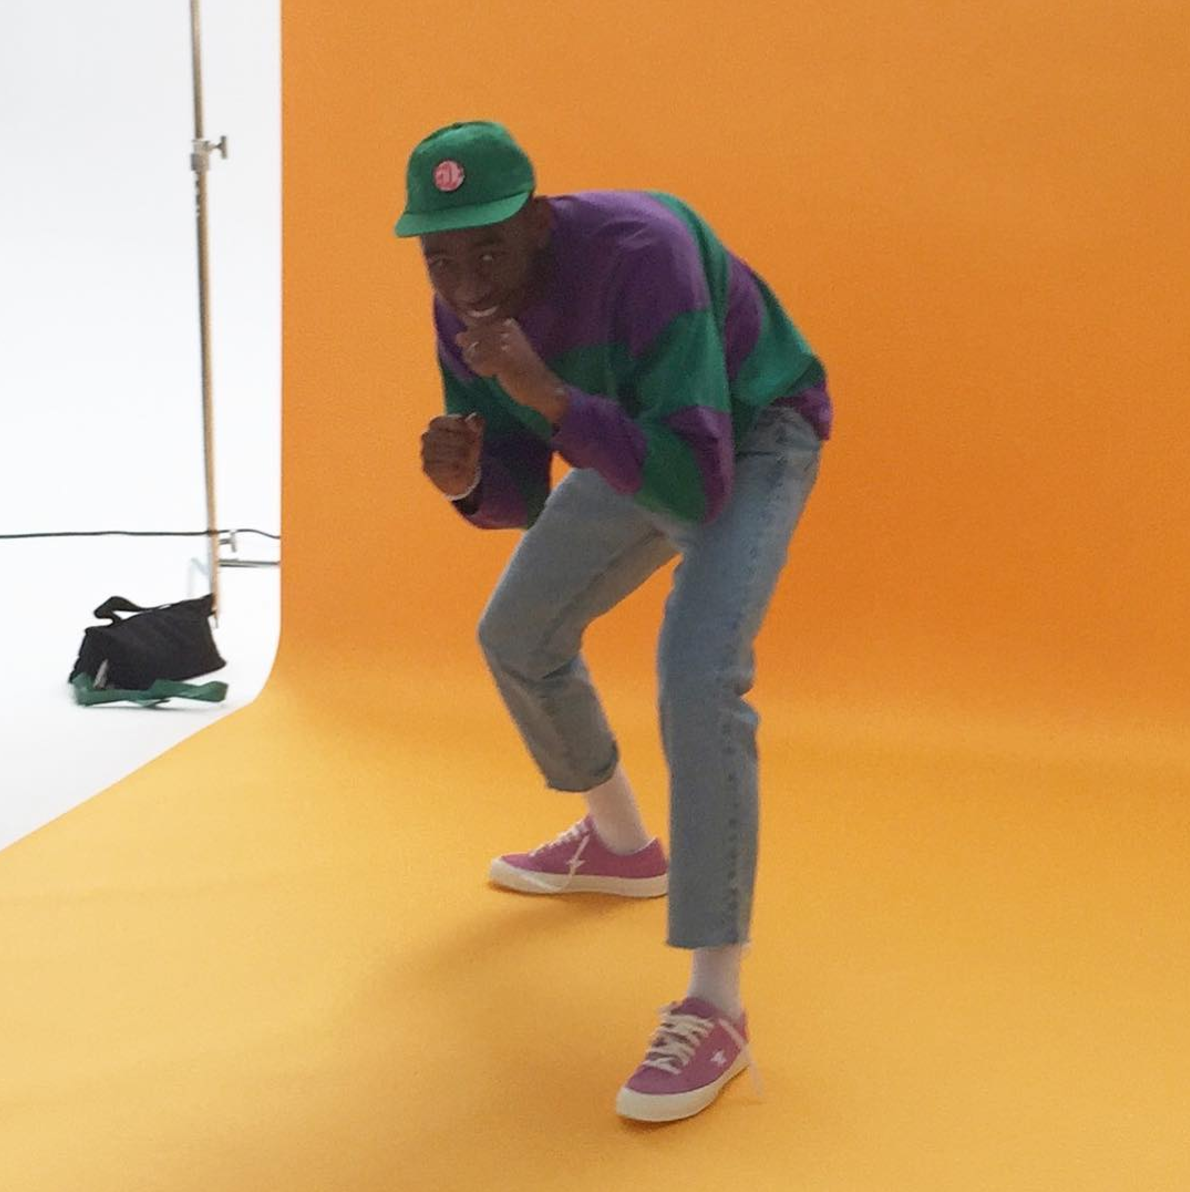 SPOTTED: Tyler, The Creator In His One Star x Golf Le Fleur Converse